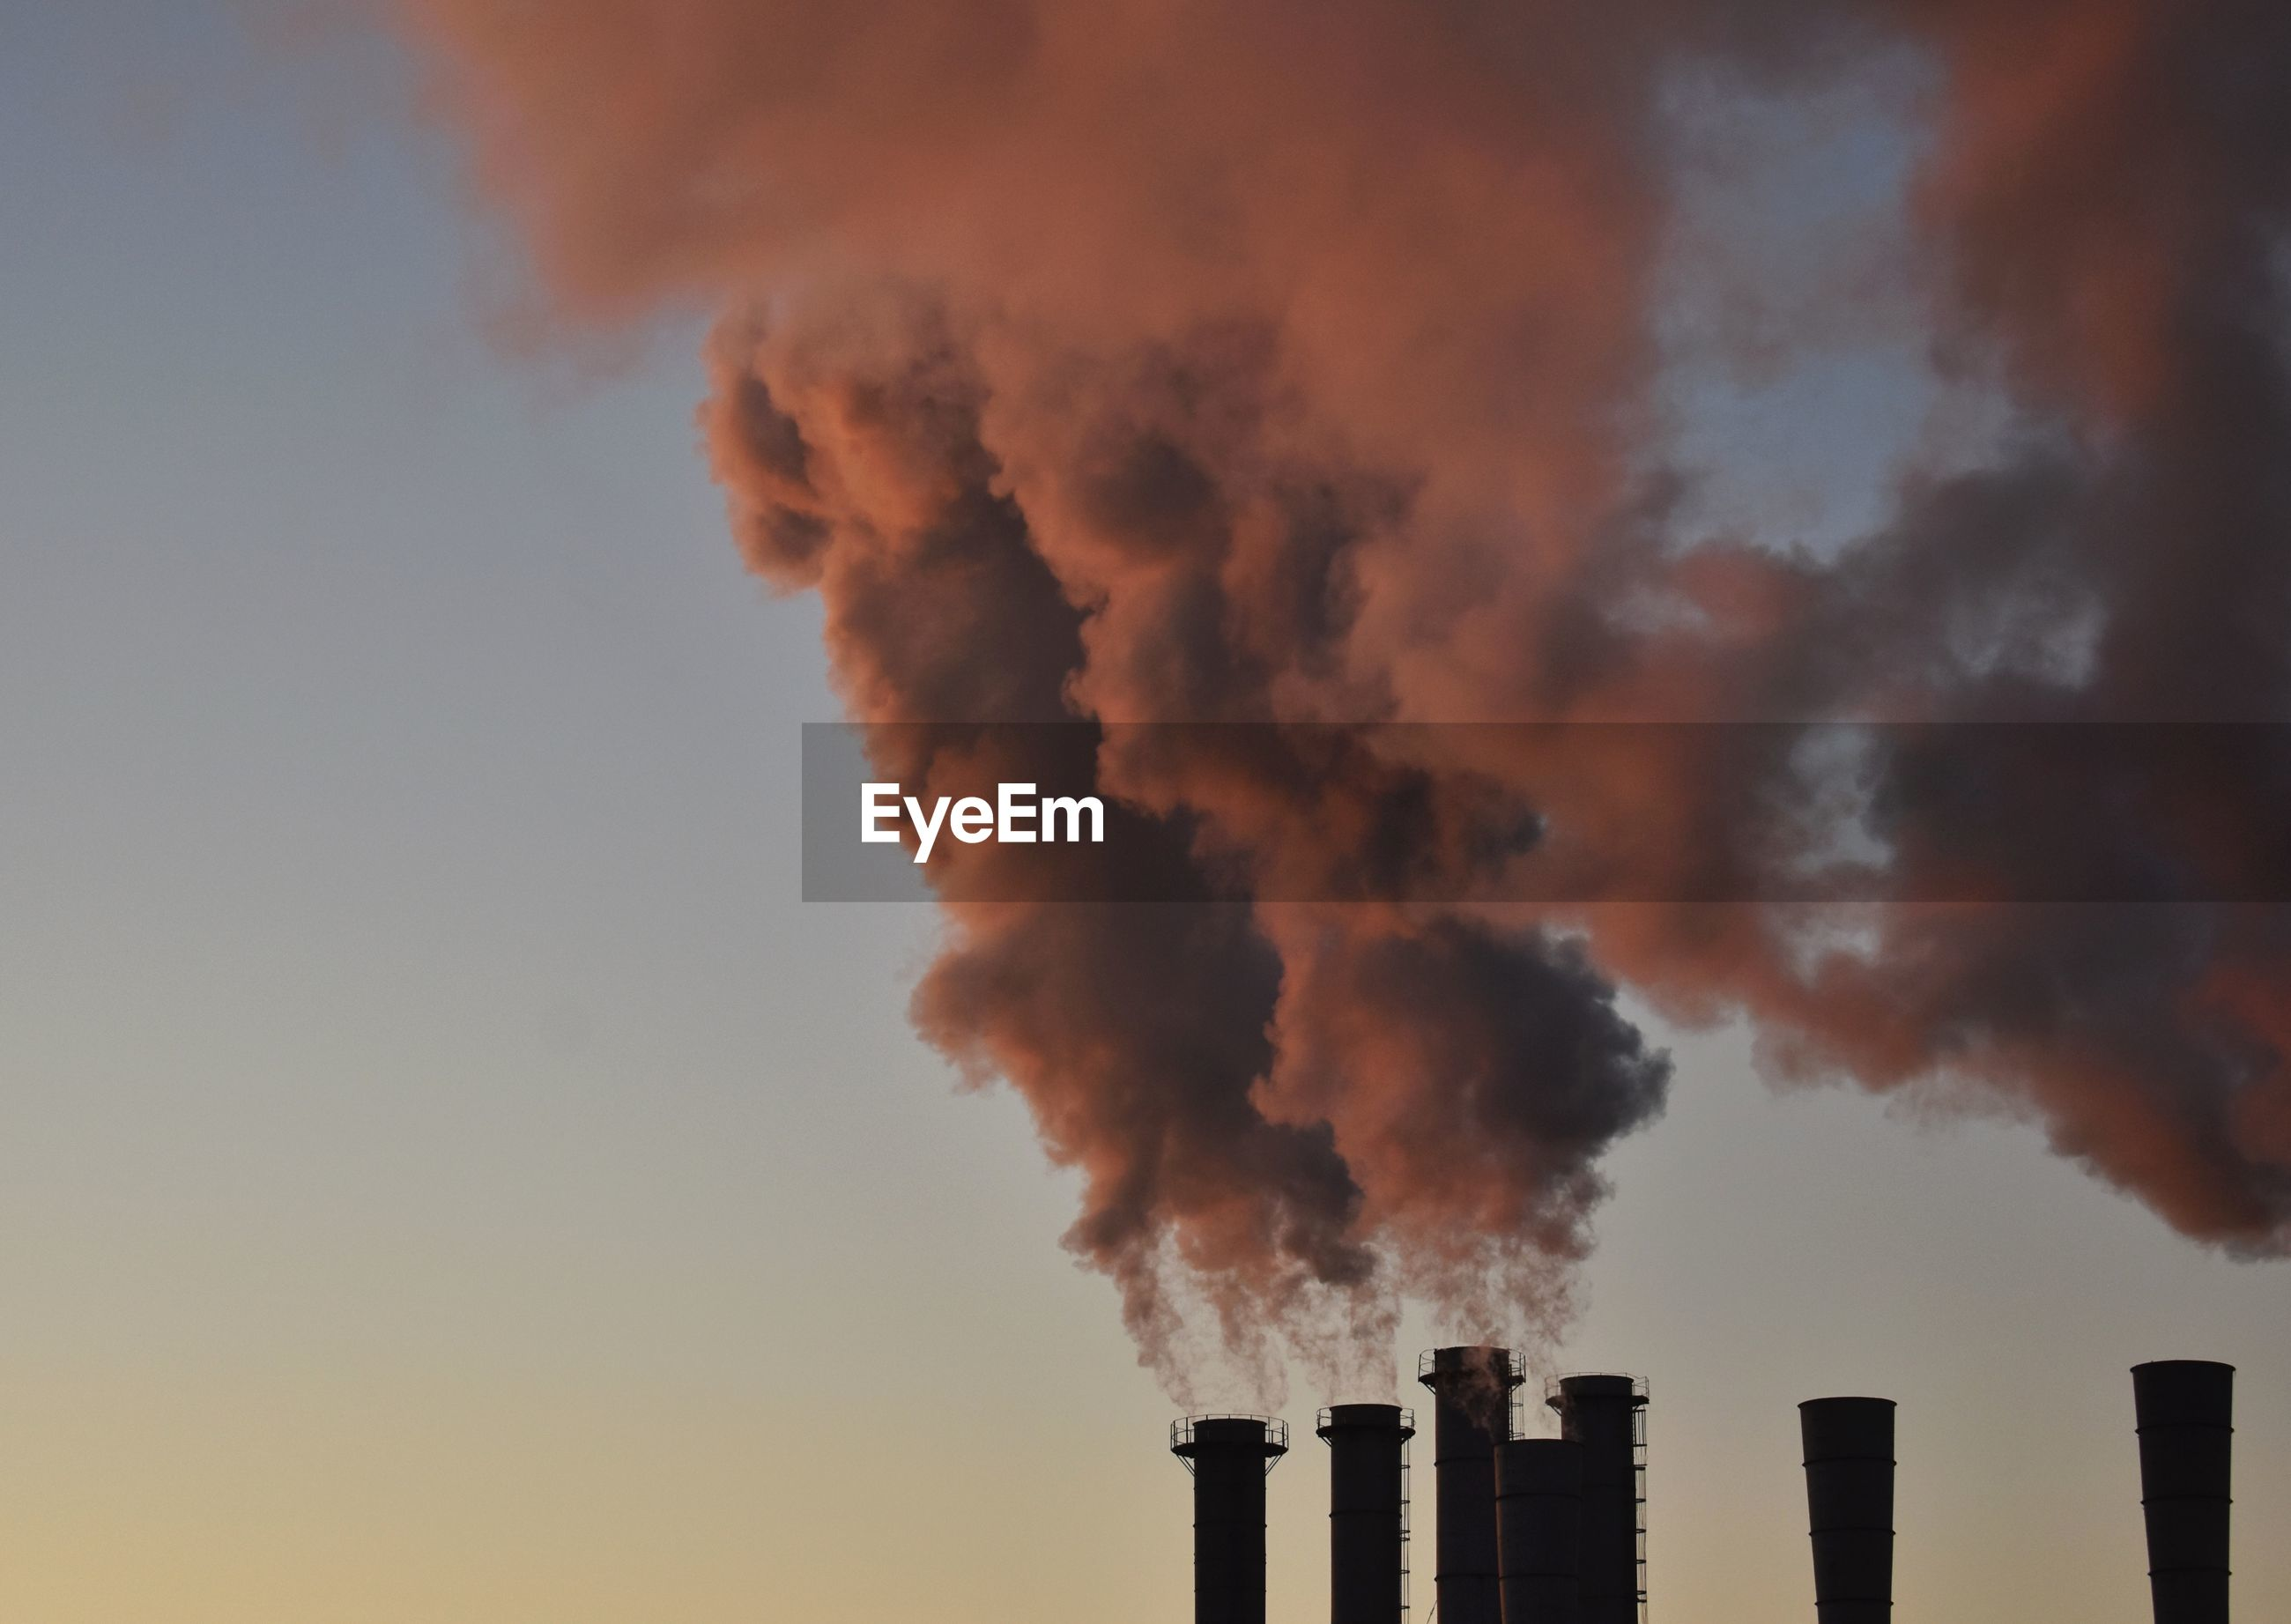 Low angle view of smoke emitting from factory against sky